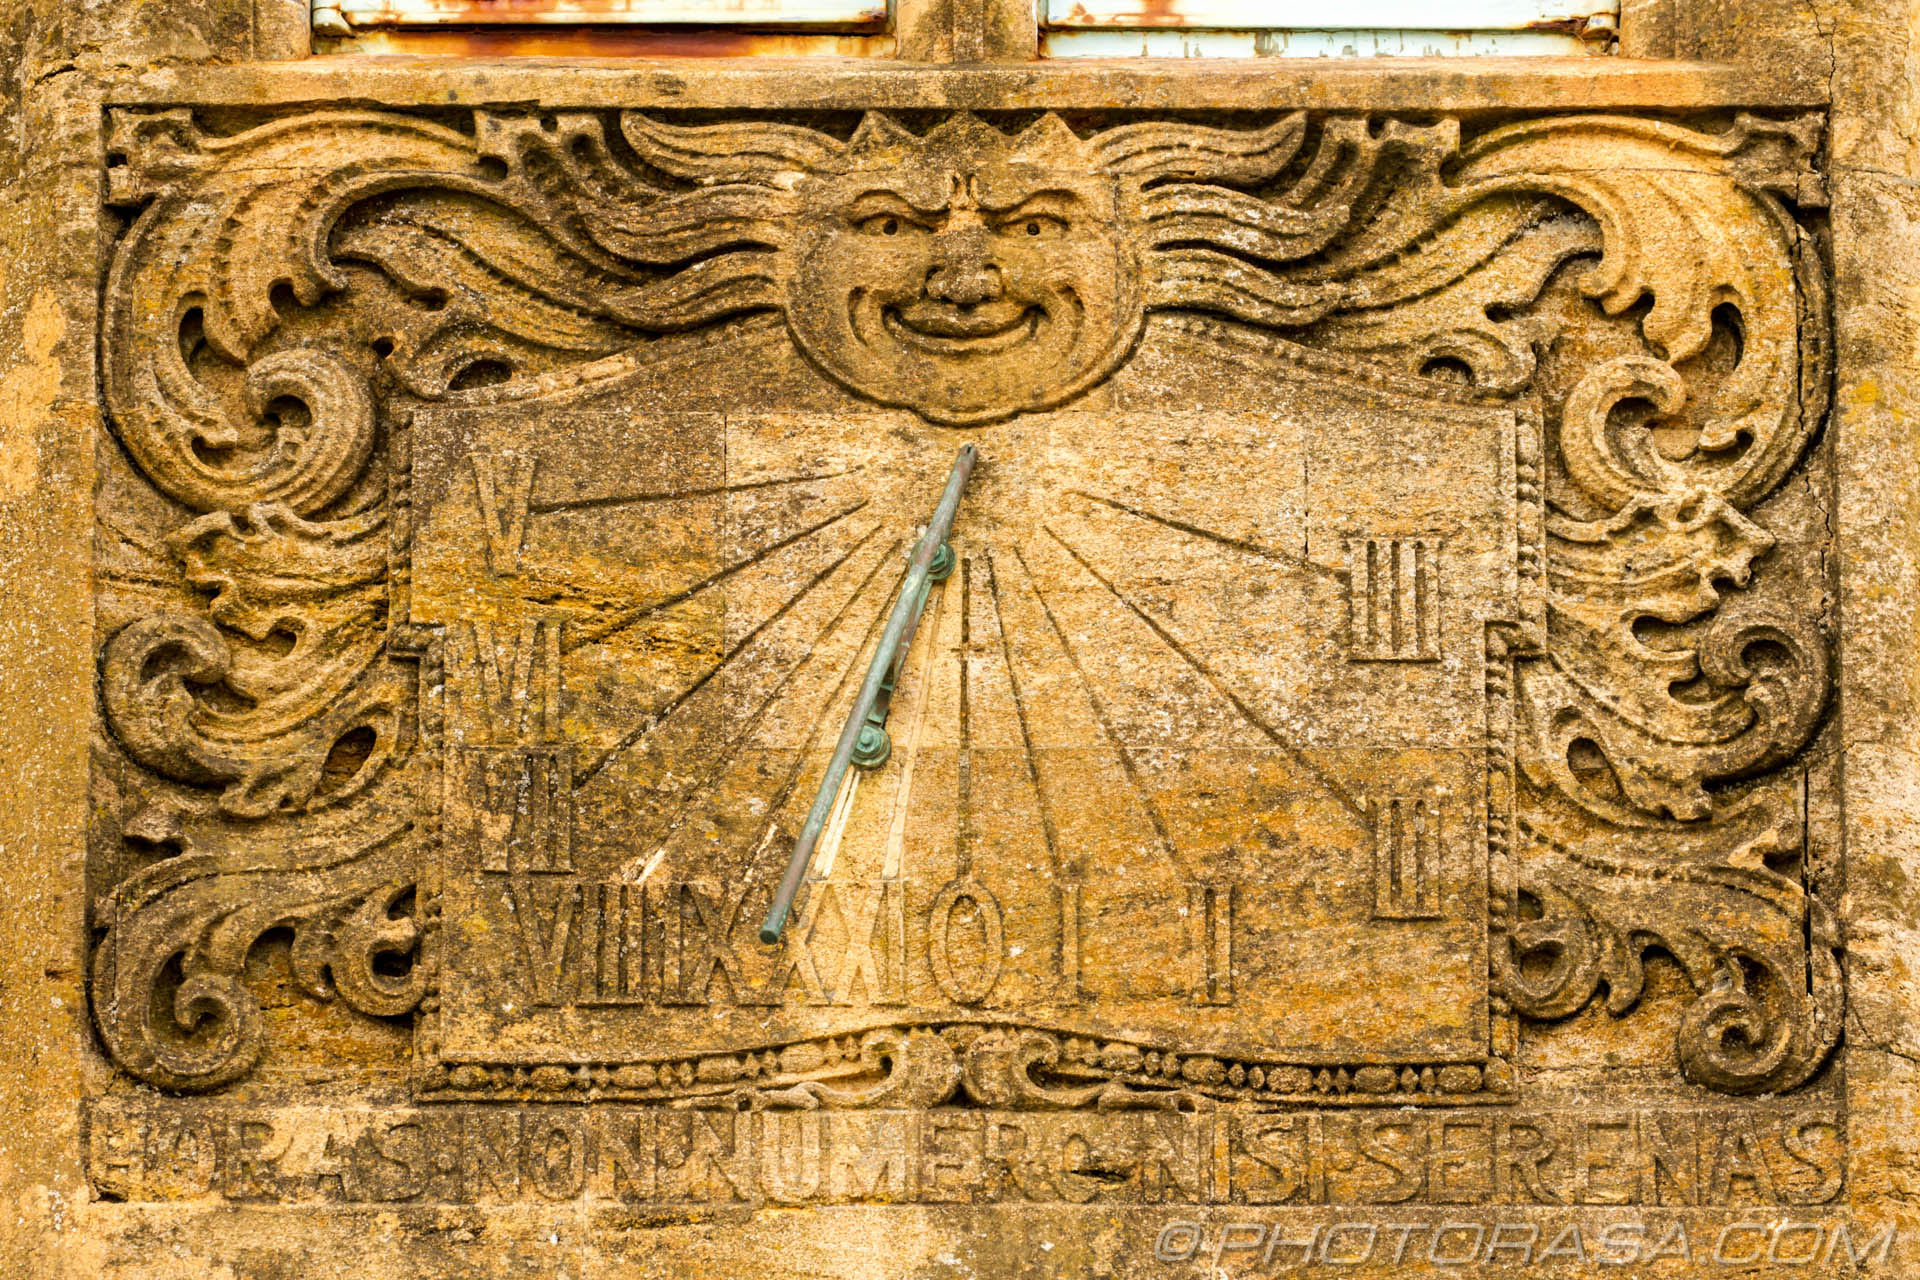 http://photorasa.com/lyme-regis/sun-dial-on-front-wall-of-house/